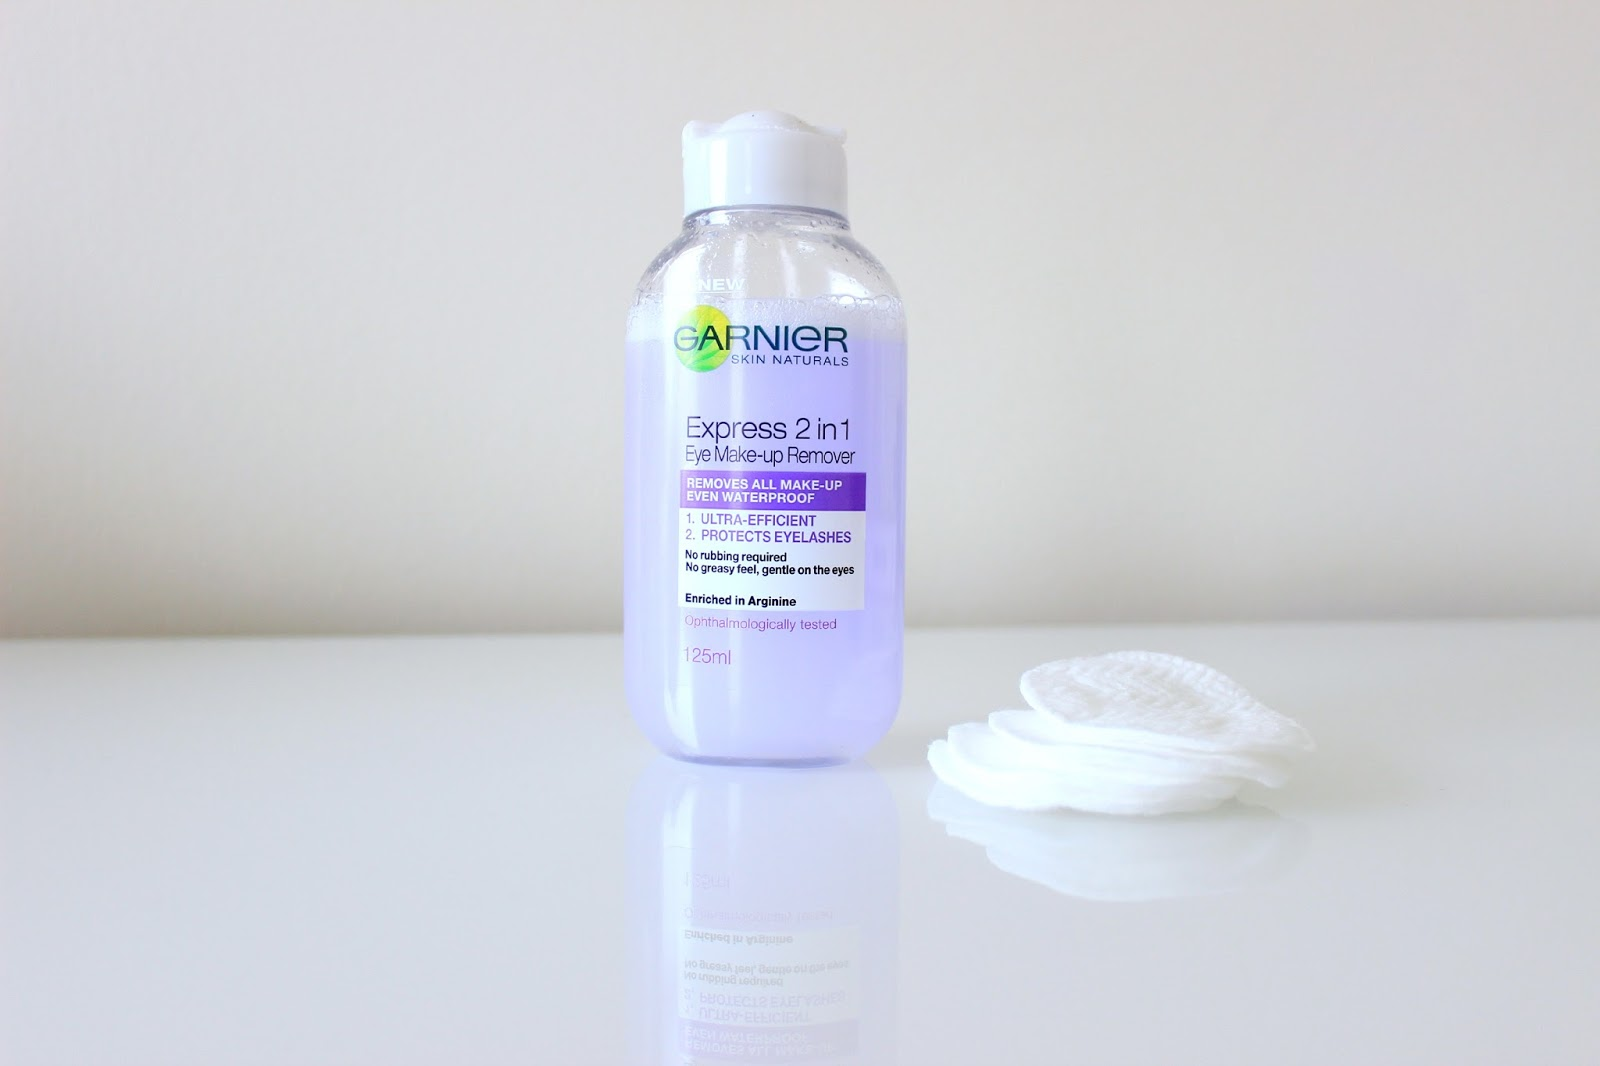 Beauty Toolkit Garnier Express 2 In 1 Eye Make-up Remover